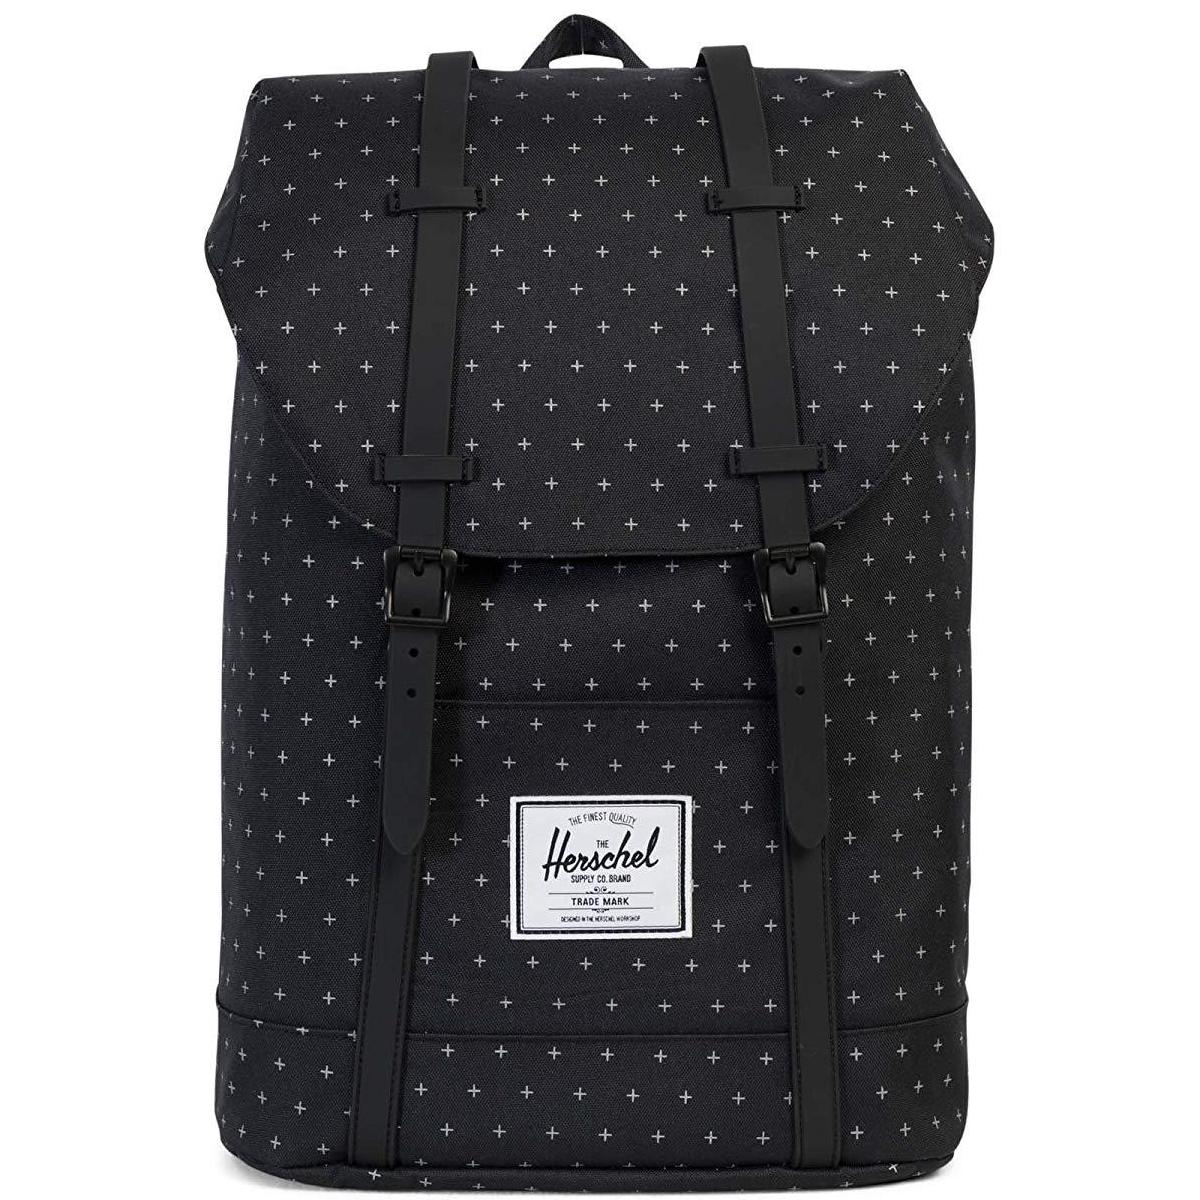 4087f6e06 [Herschel Supply Co.] Retreat Backpack 19.5 L Compact everyday use Laptop  Backpack